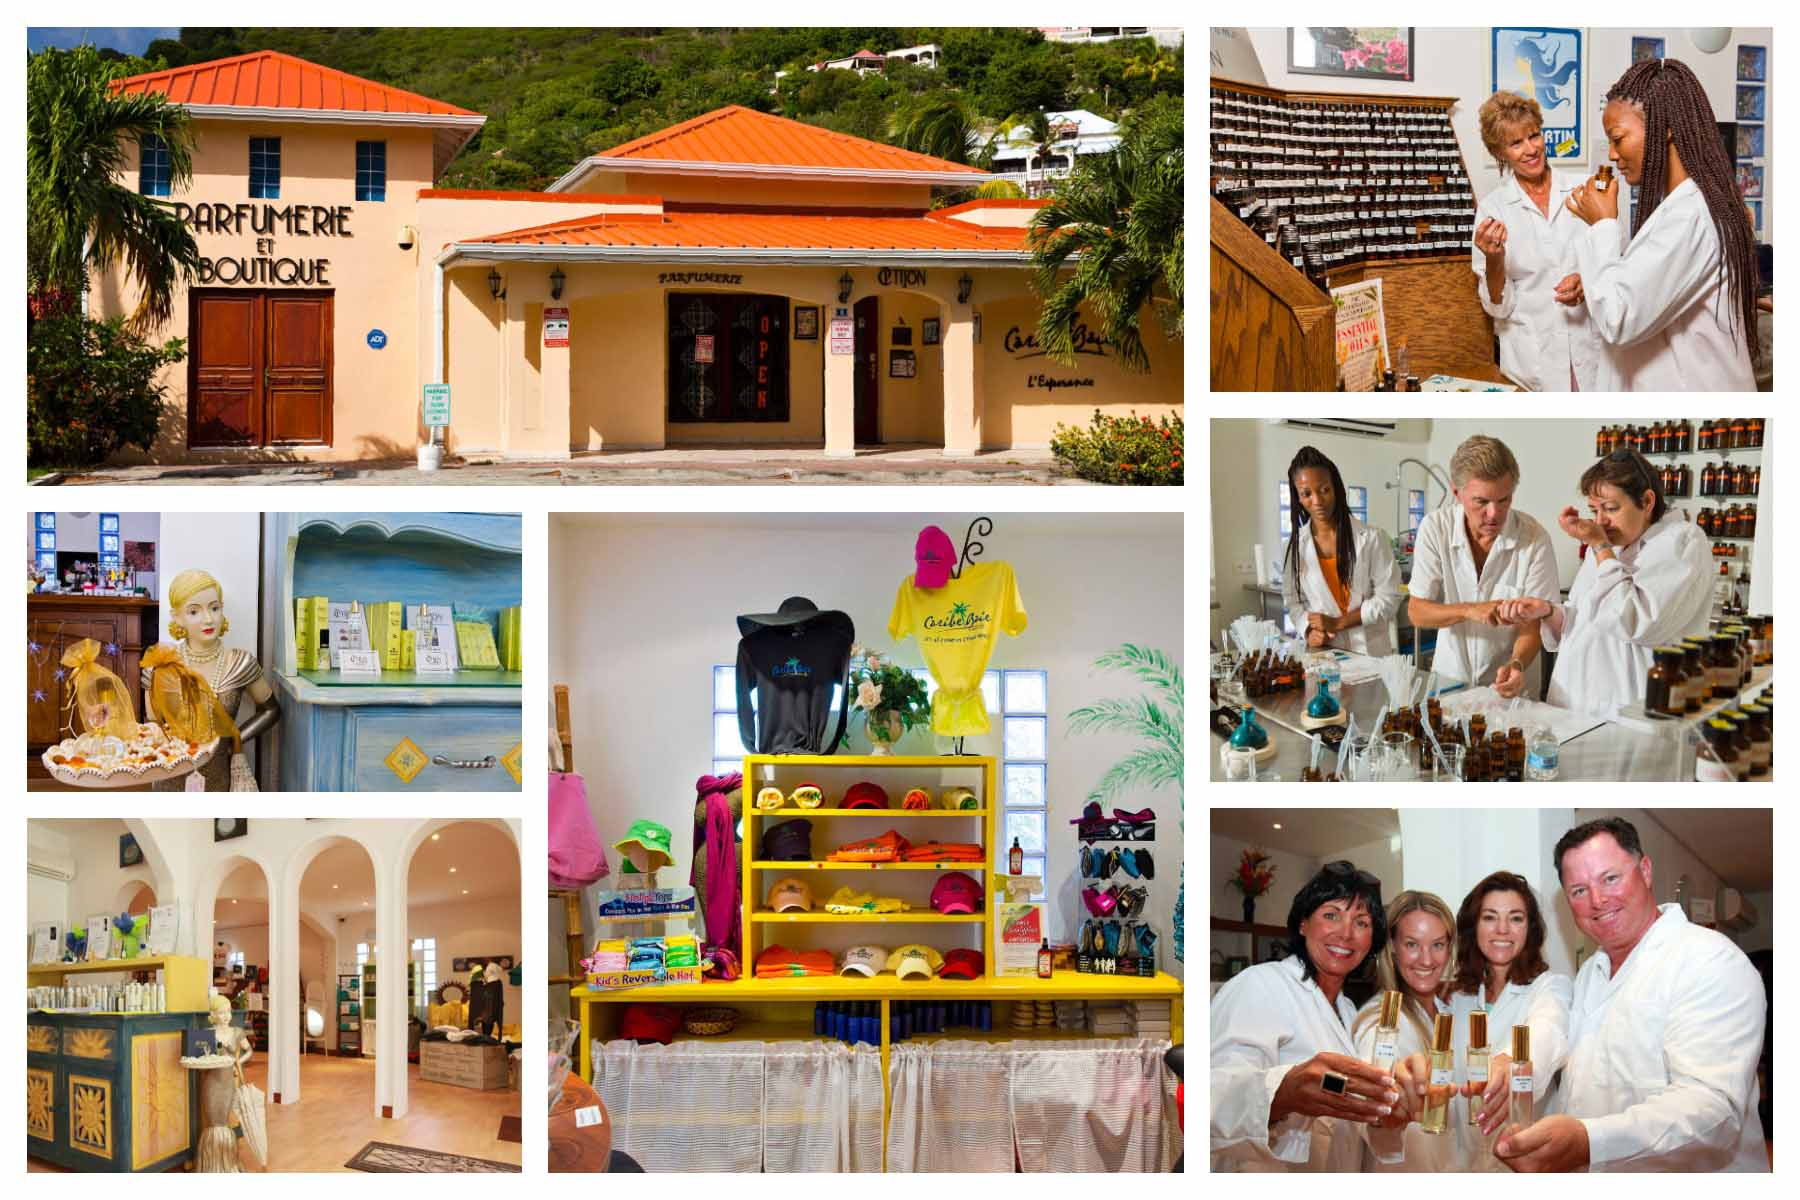 Tijon Perfumes - St. Martin / St. Maarten - Grand Case - Make your own perfume, cologne, scent, perfume making classes. Boutique store, souvernirs, perfumes, jewelry.